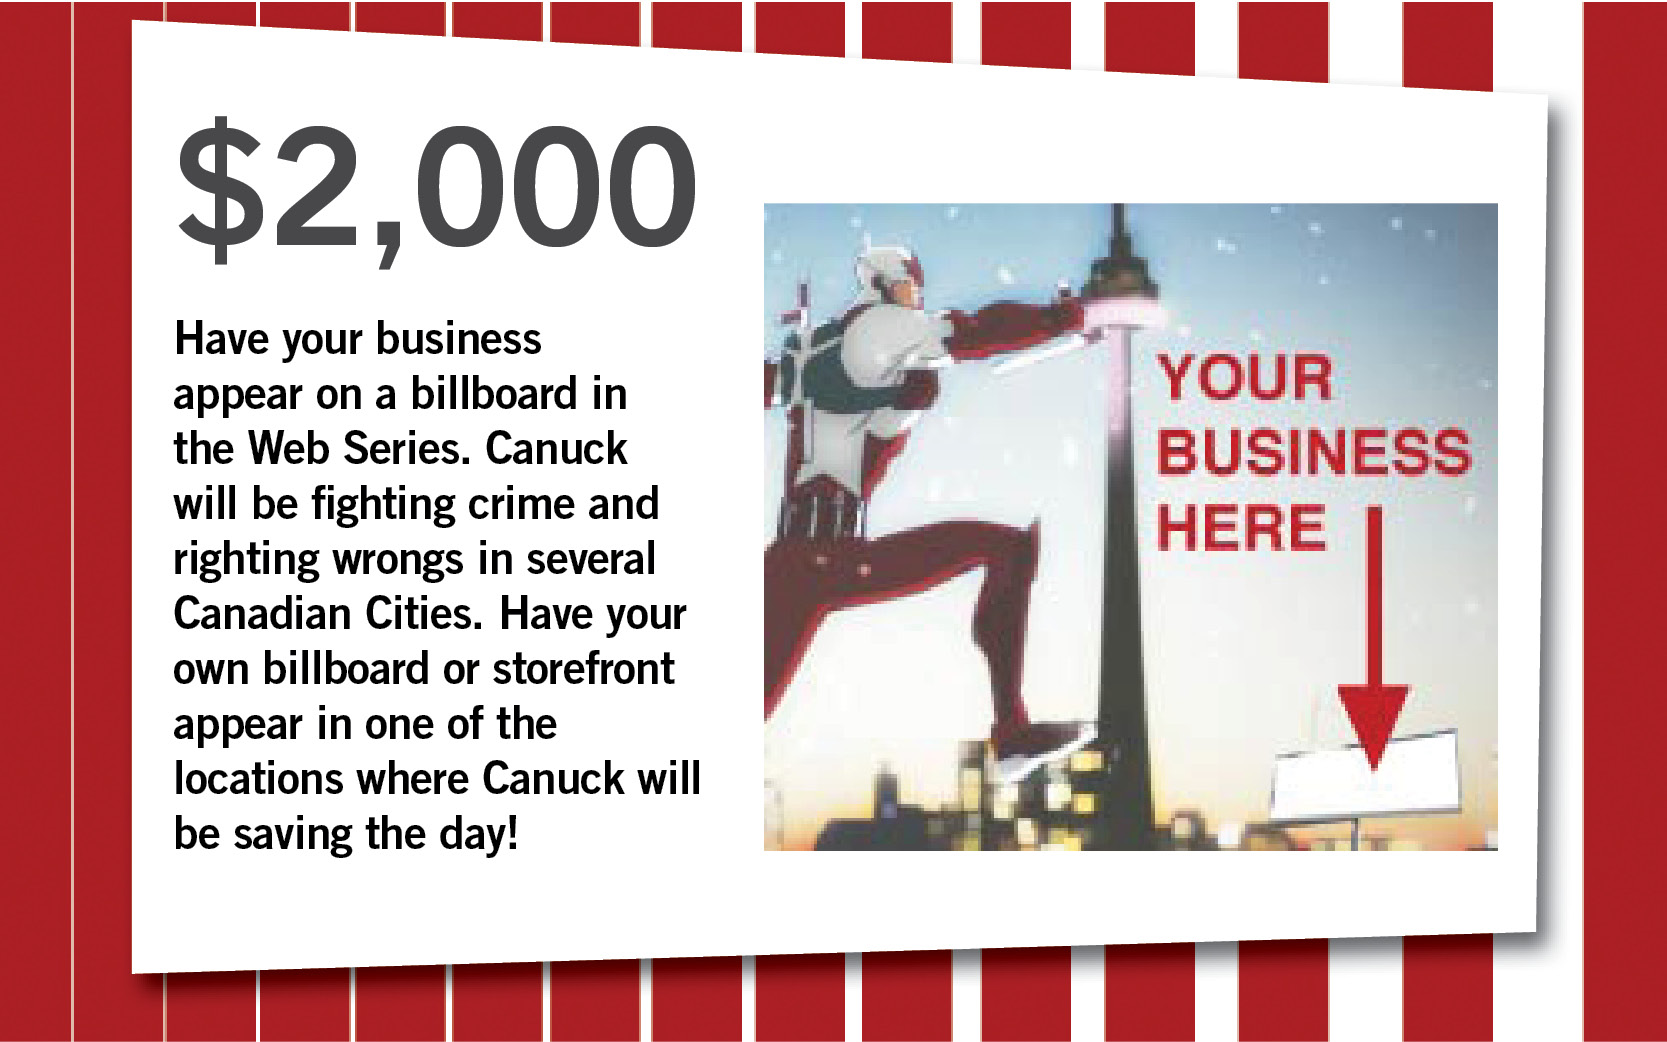 Have your business appear on a billboard in the Web Series. Canuck will be fighting crime and righting wrongs in several Canadian Cities. Have your own billboard or storefront appear in one of the locations where Canuck will be saving the day!